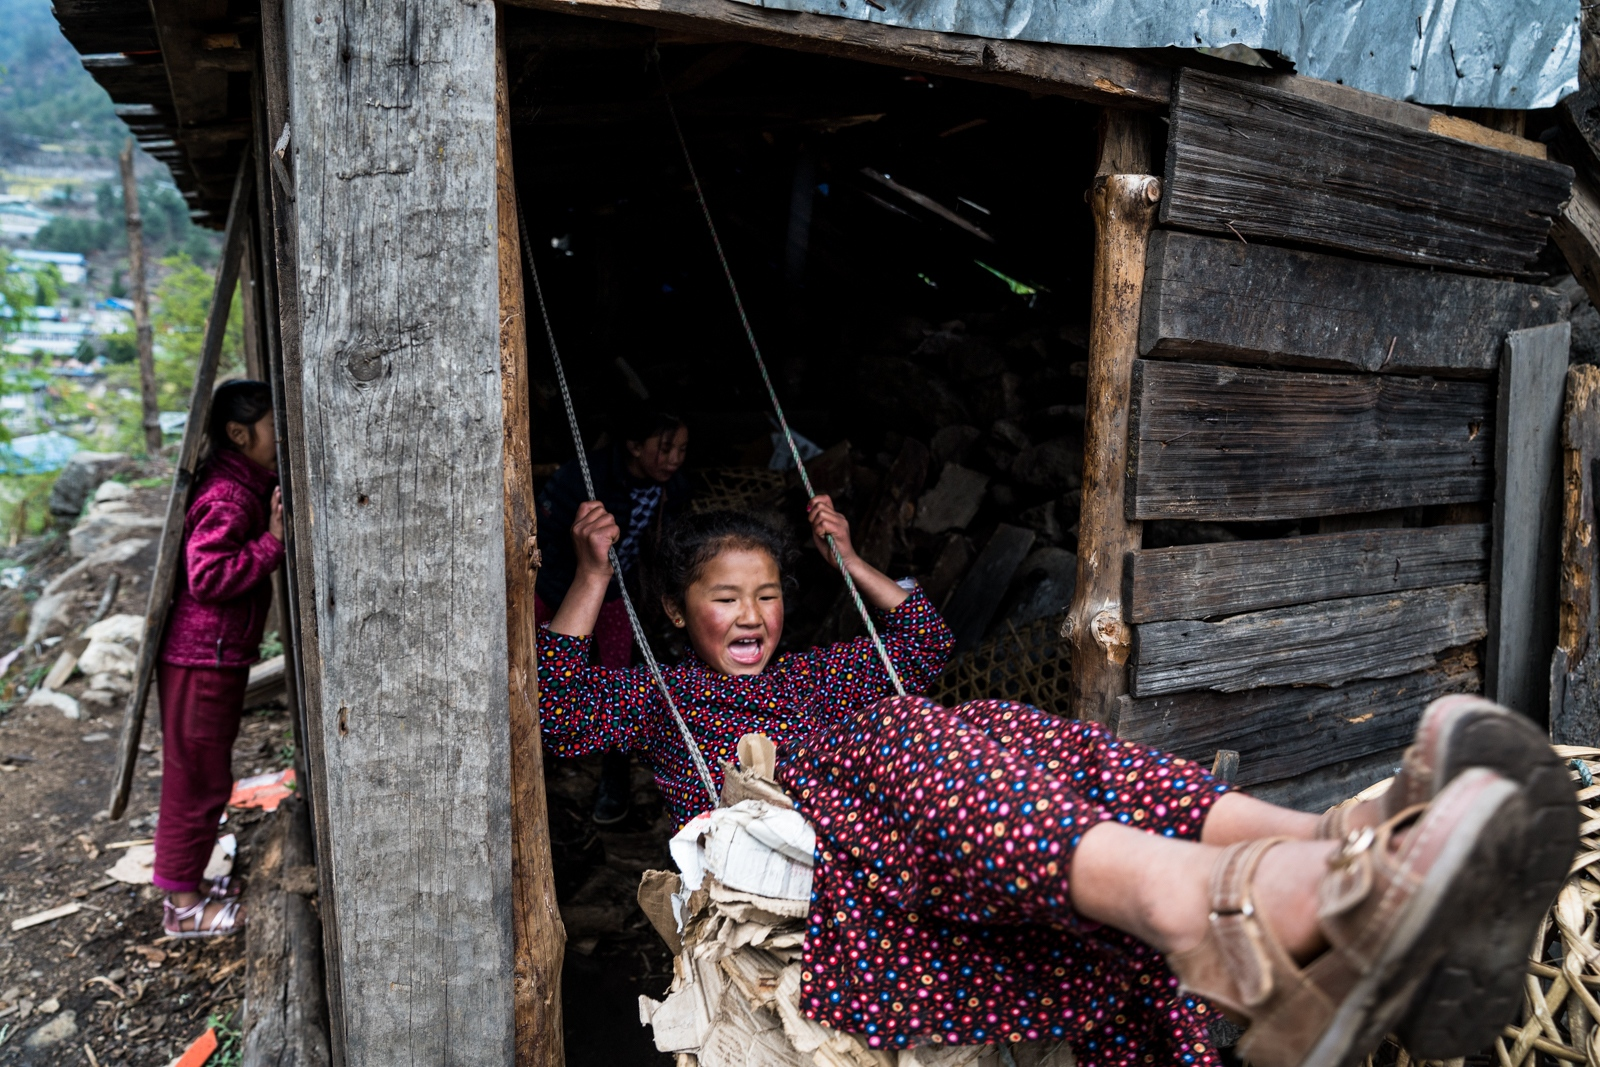 Children play on a makeshift swing inside a wood storage barn.